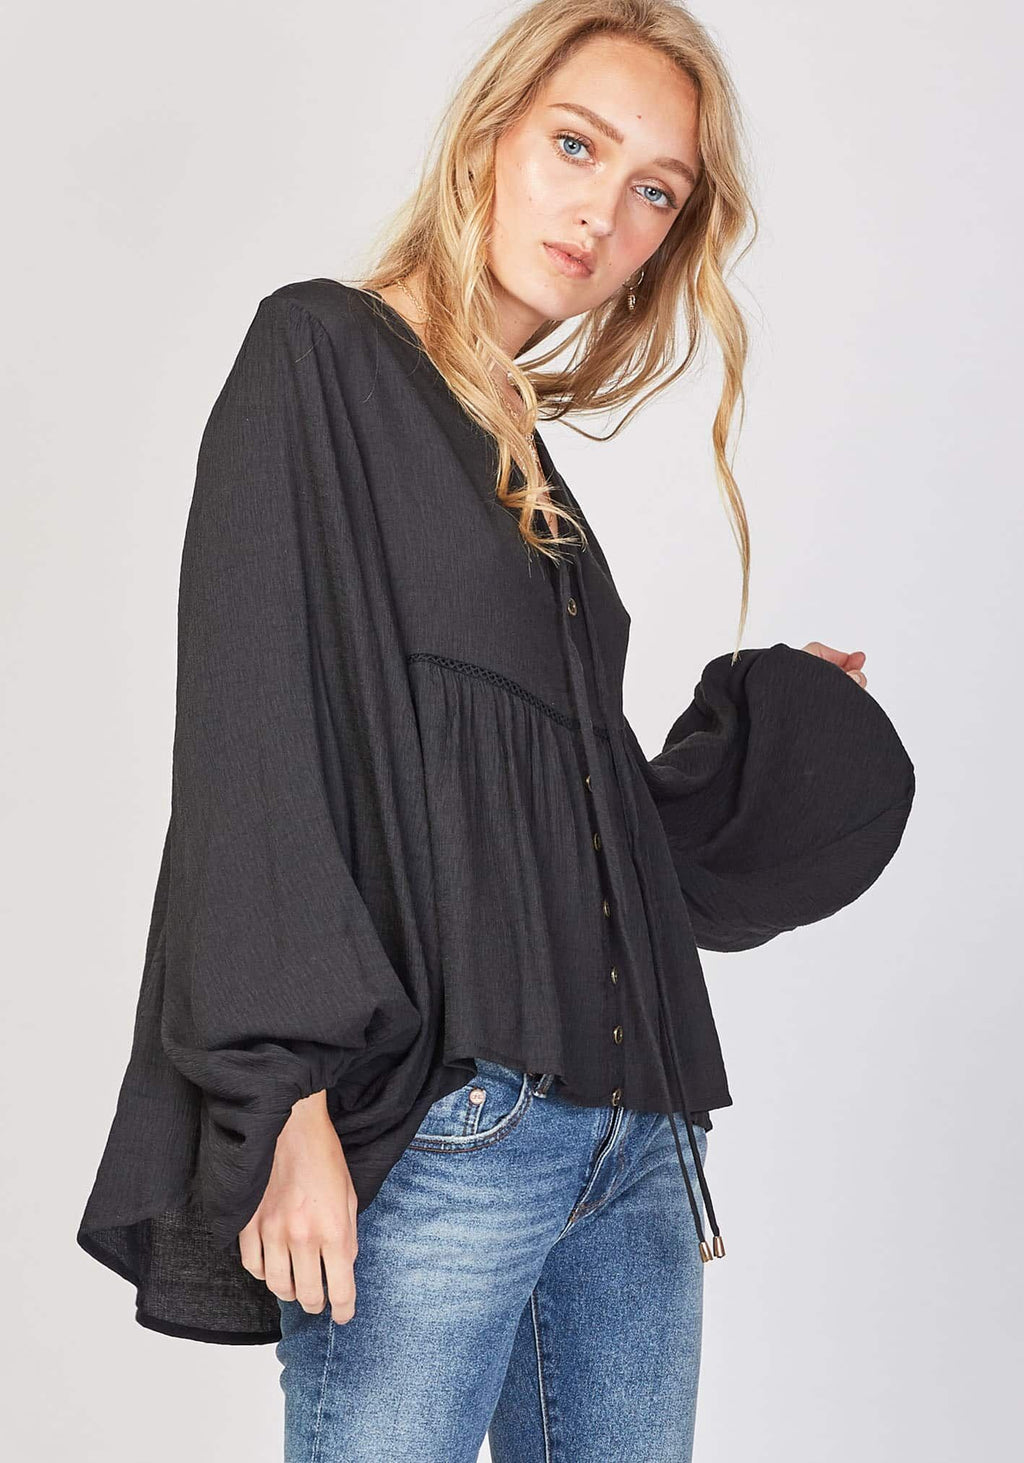 Barrymore Blouse